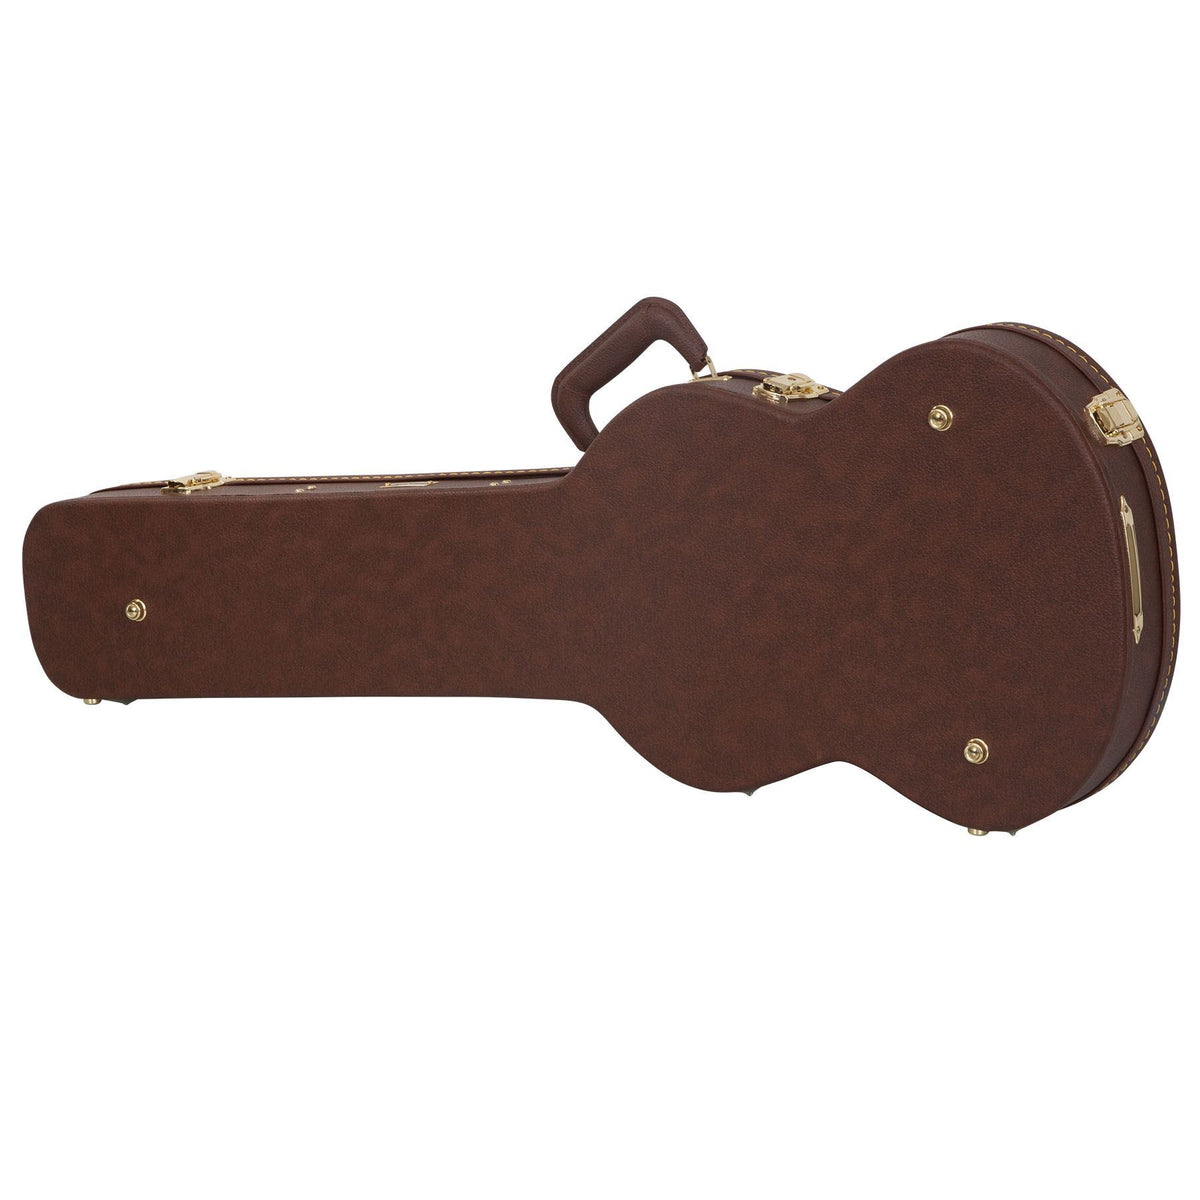 Gator Cases Deluxe Brown Wood Case for Gibson SG Clasic, SG Standard, SG Supreme Electric Guitars